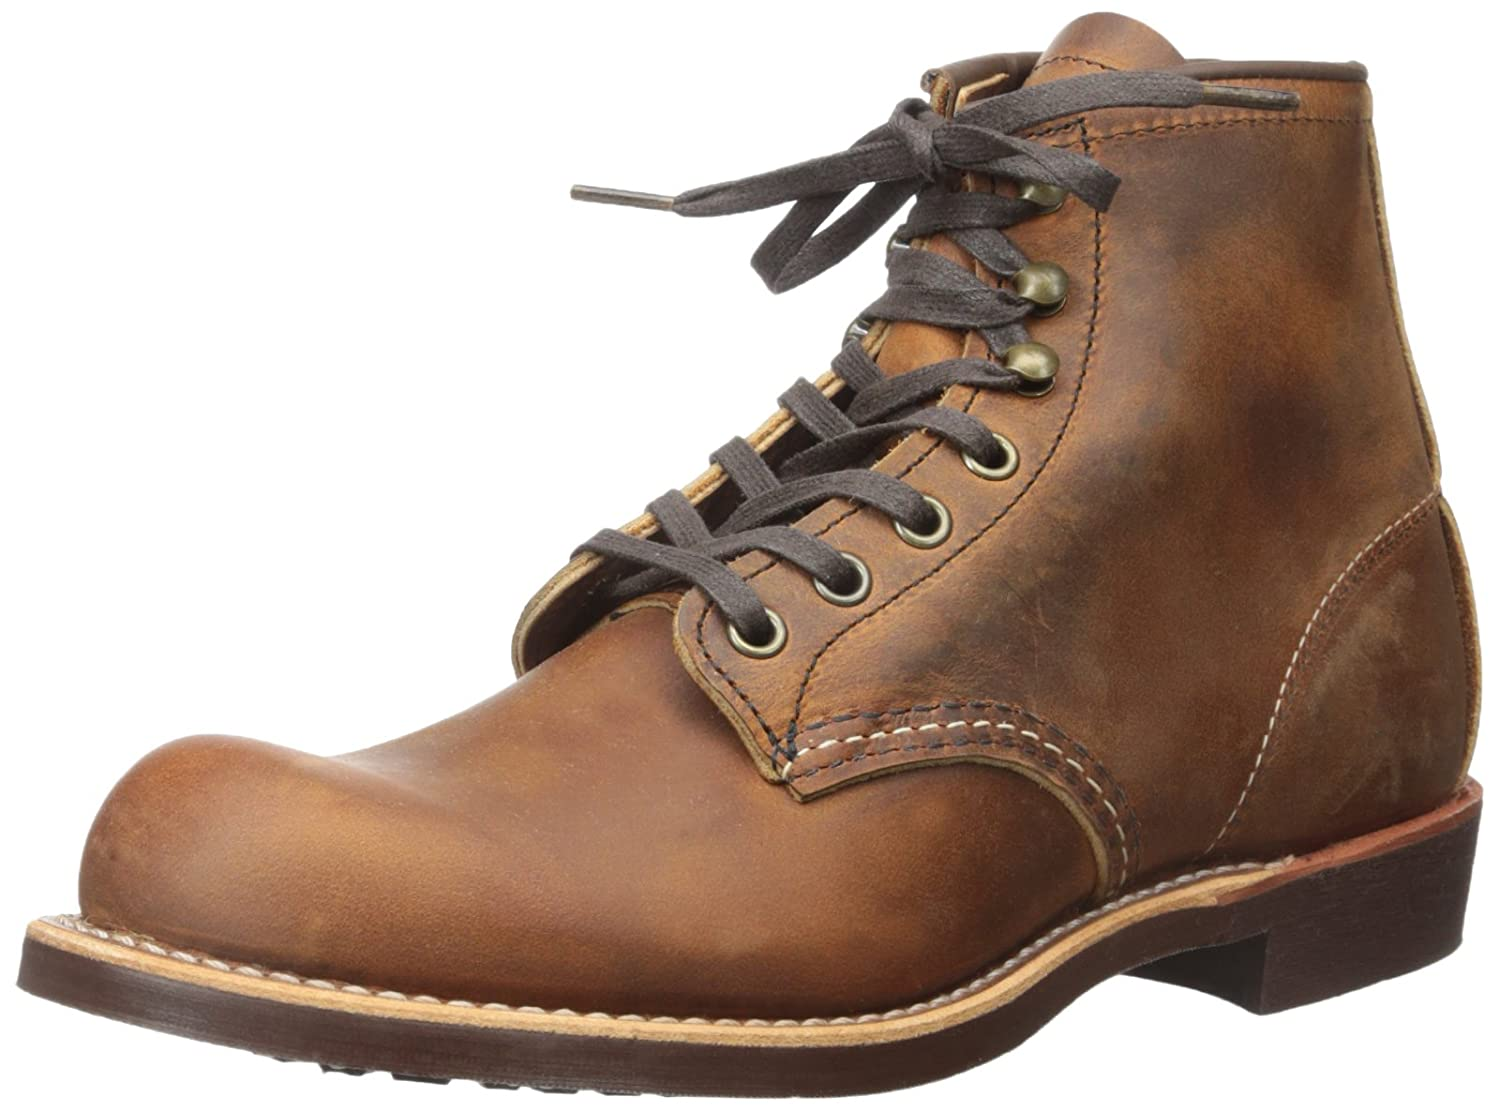 Red Wing Heritage メンズ Red Wing Heritage B018TL5QSW 10.5 D(M) US|Copper Rough and Tough Leather Copper Rough and Tough Leather 10.5 D(M) US